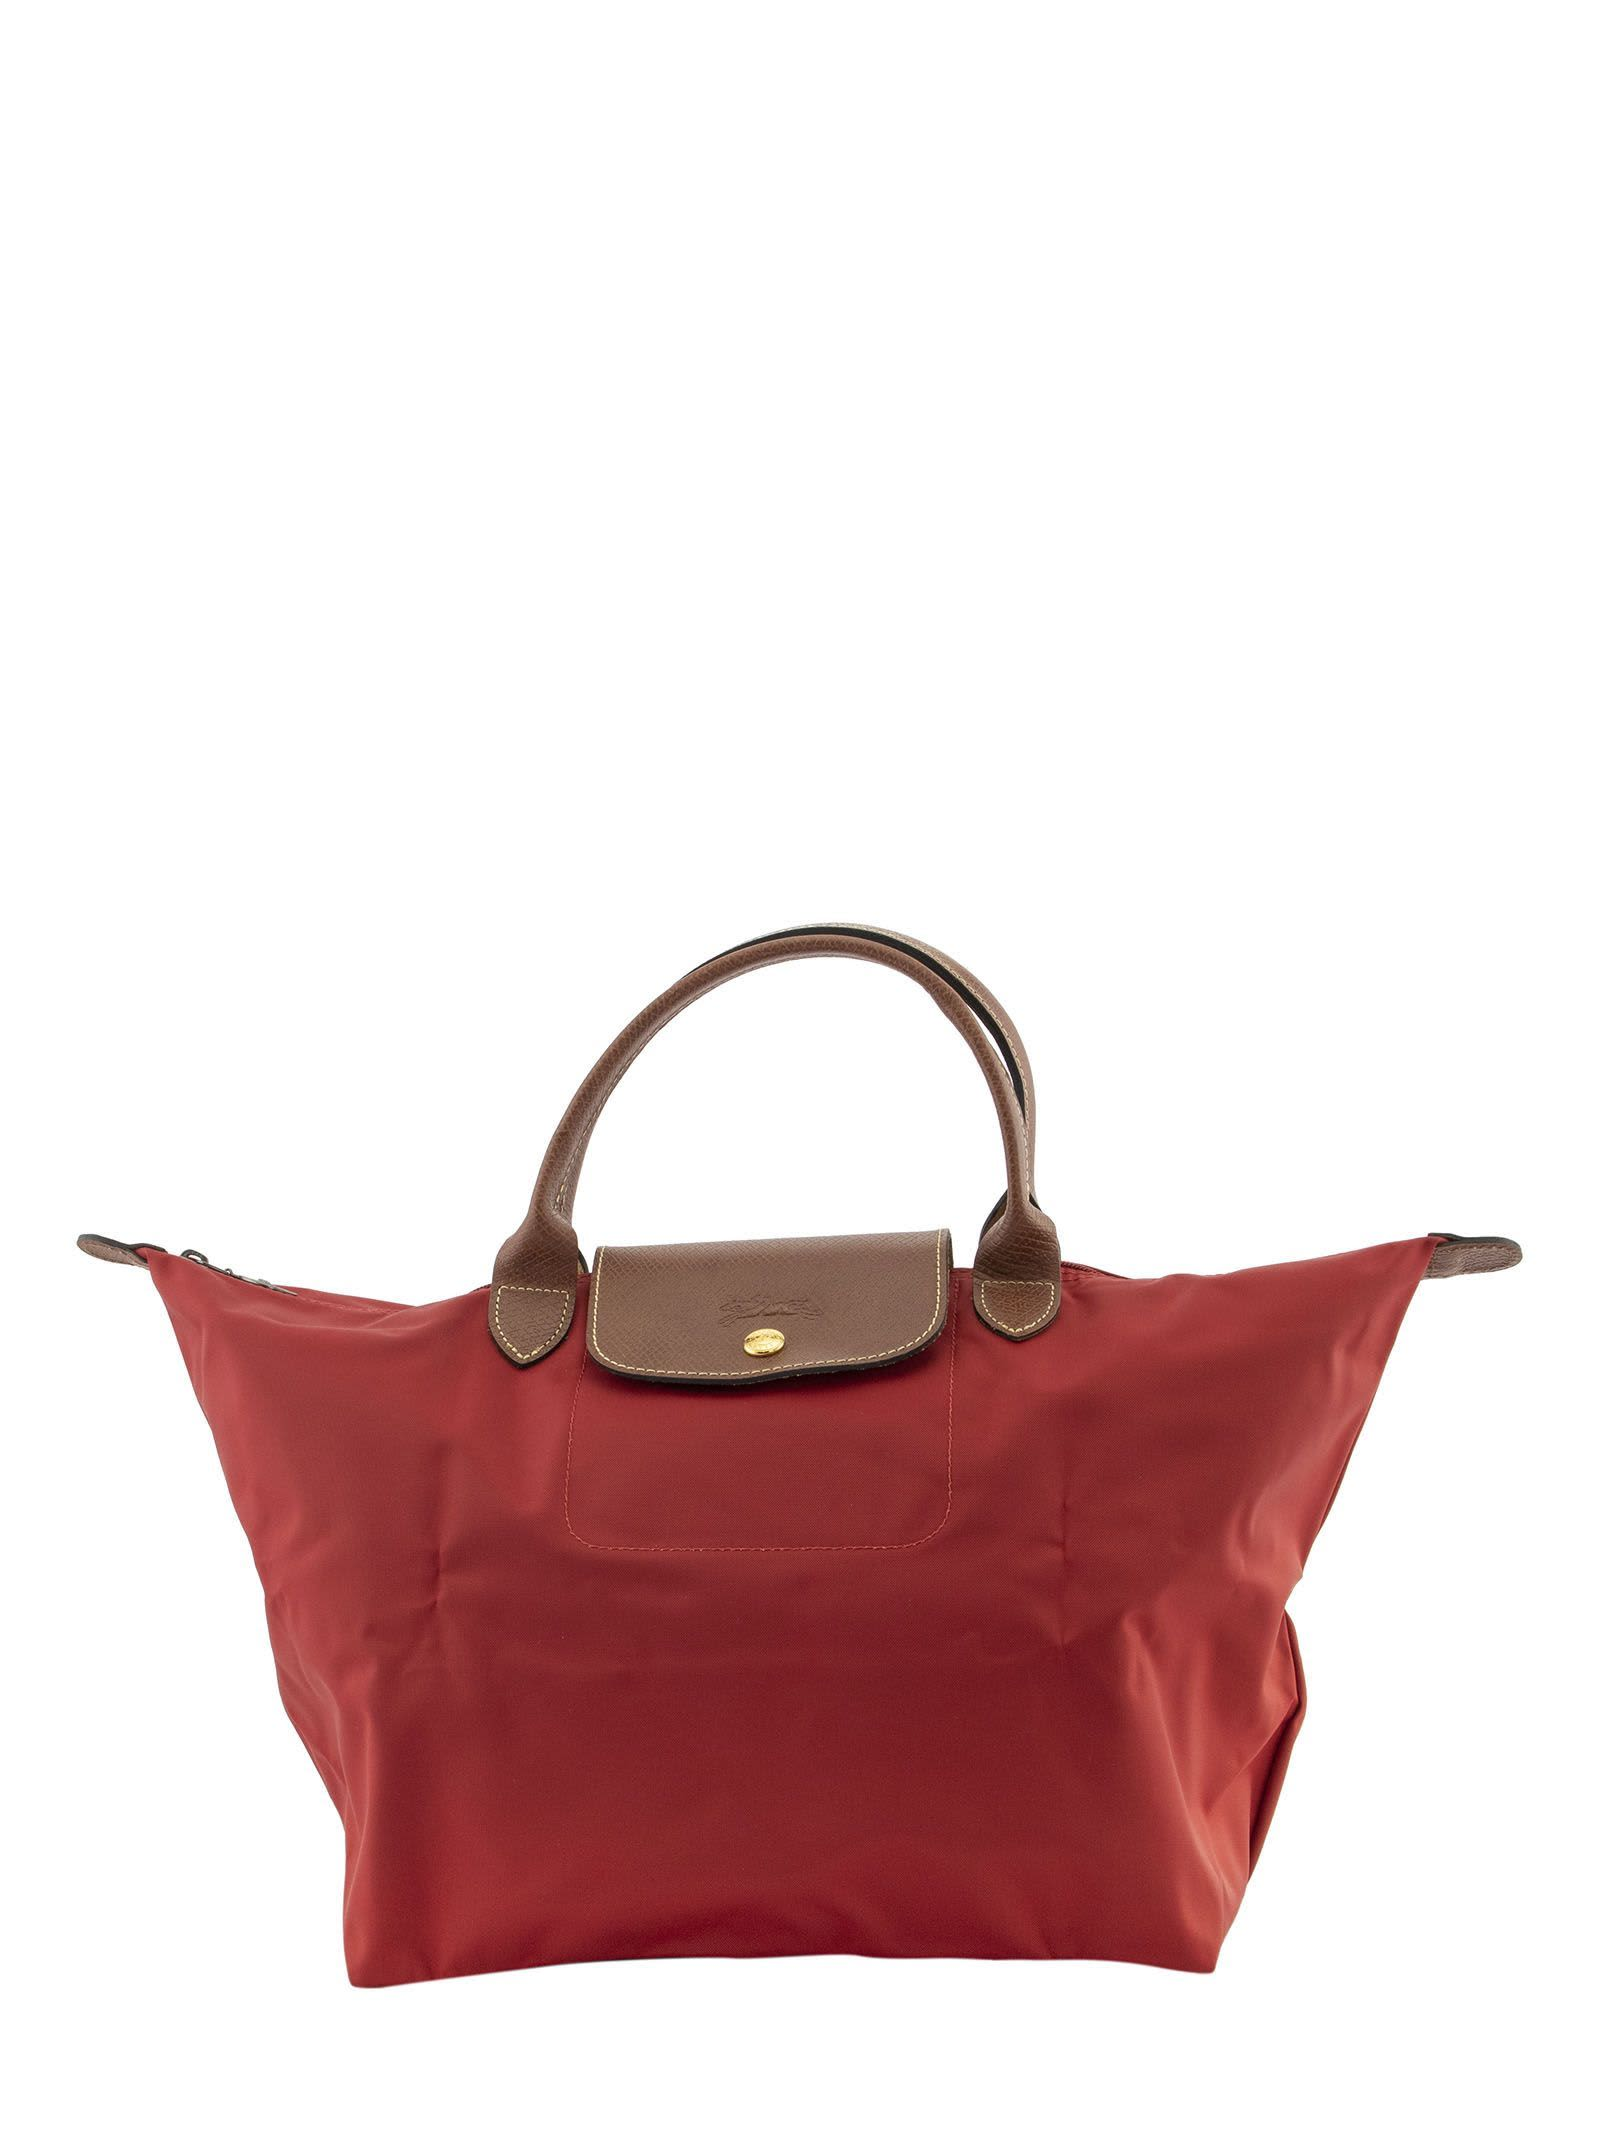 Longchamp Le Pliage Top-handle M